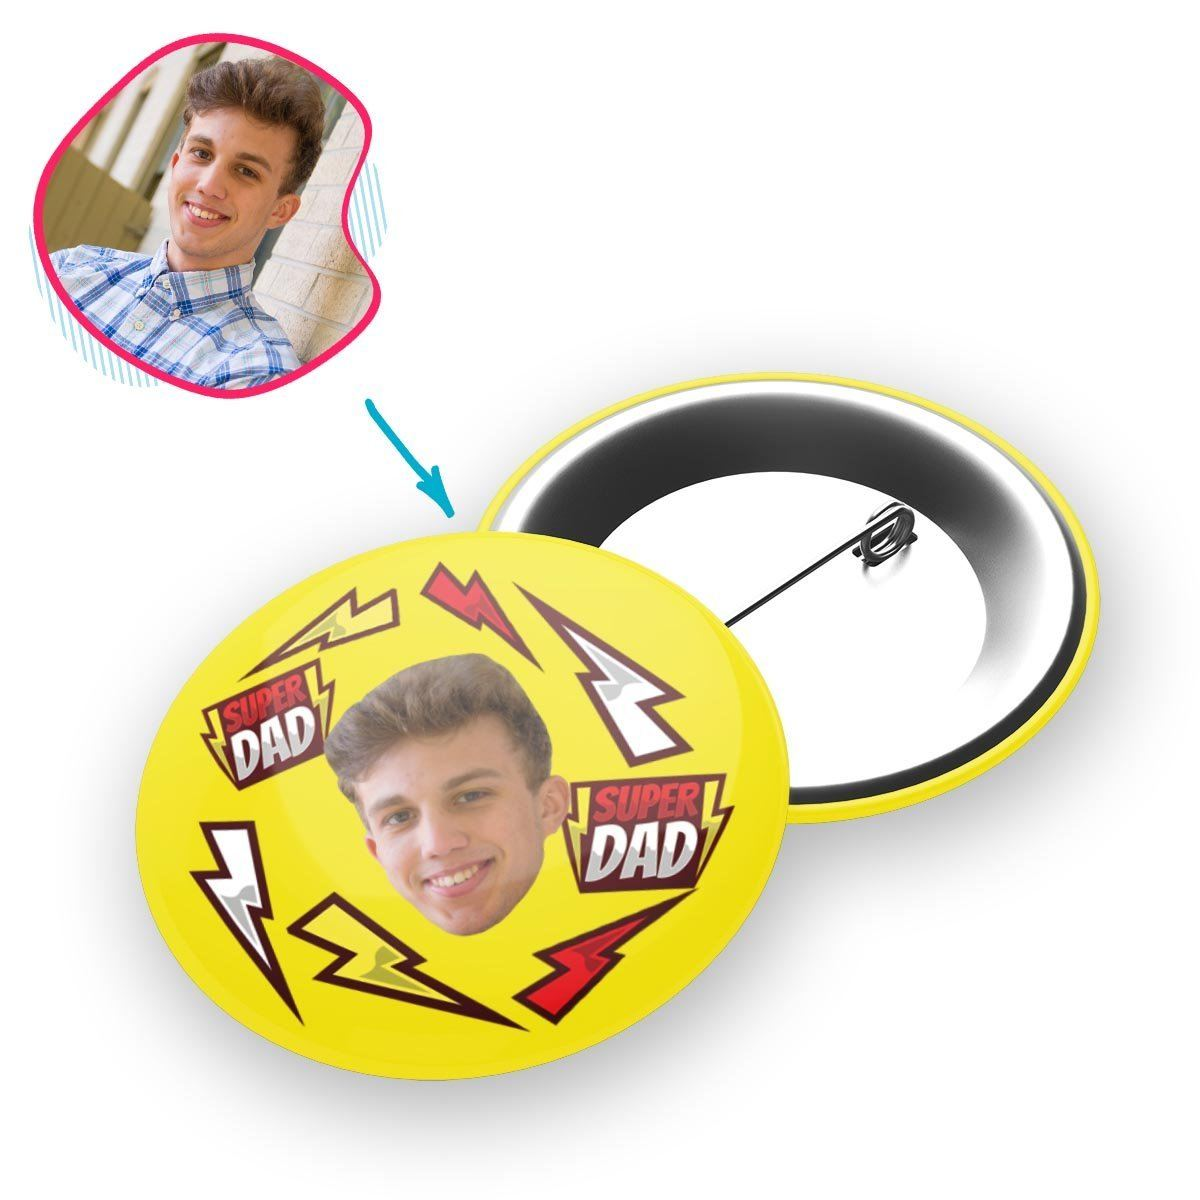 yellow Super Dad pin personalized with photo of face printed on it